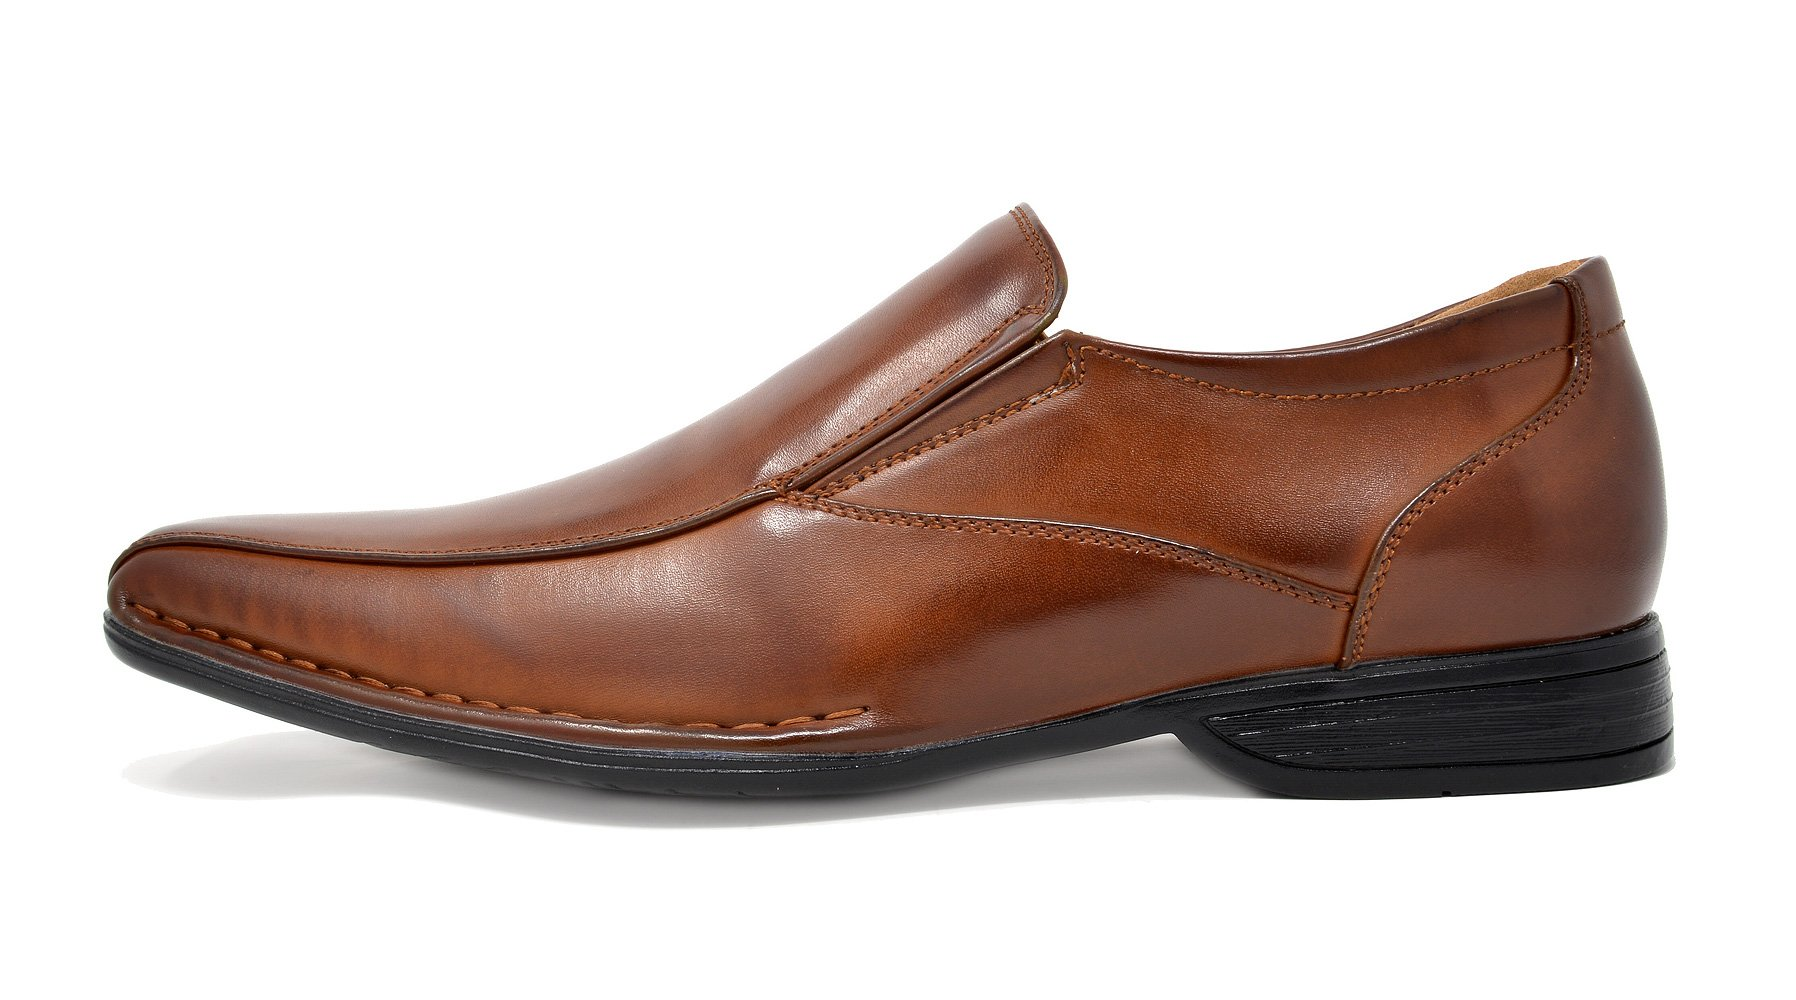 Bruno Marc Men's Giorgio-1 Brown Leather Lined Dress Loafers Shoes - 11 M US by BRUNO MARC NEW YORK (Image #2)